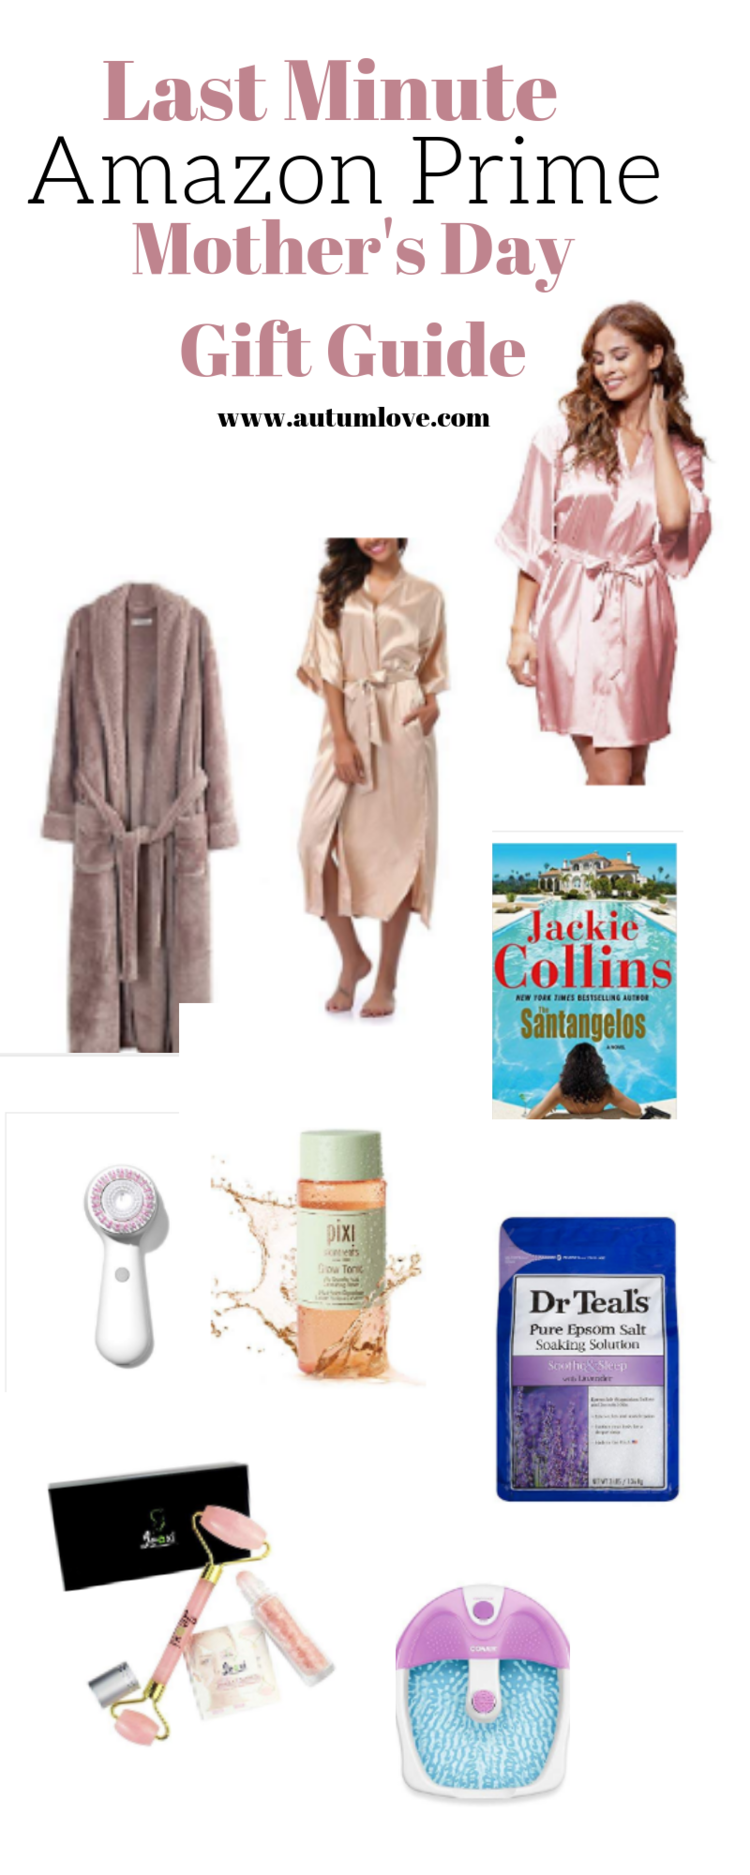 Mothers Day Gift Guide.png